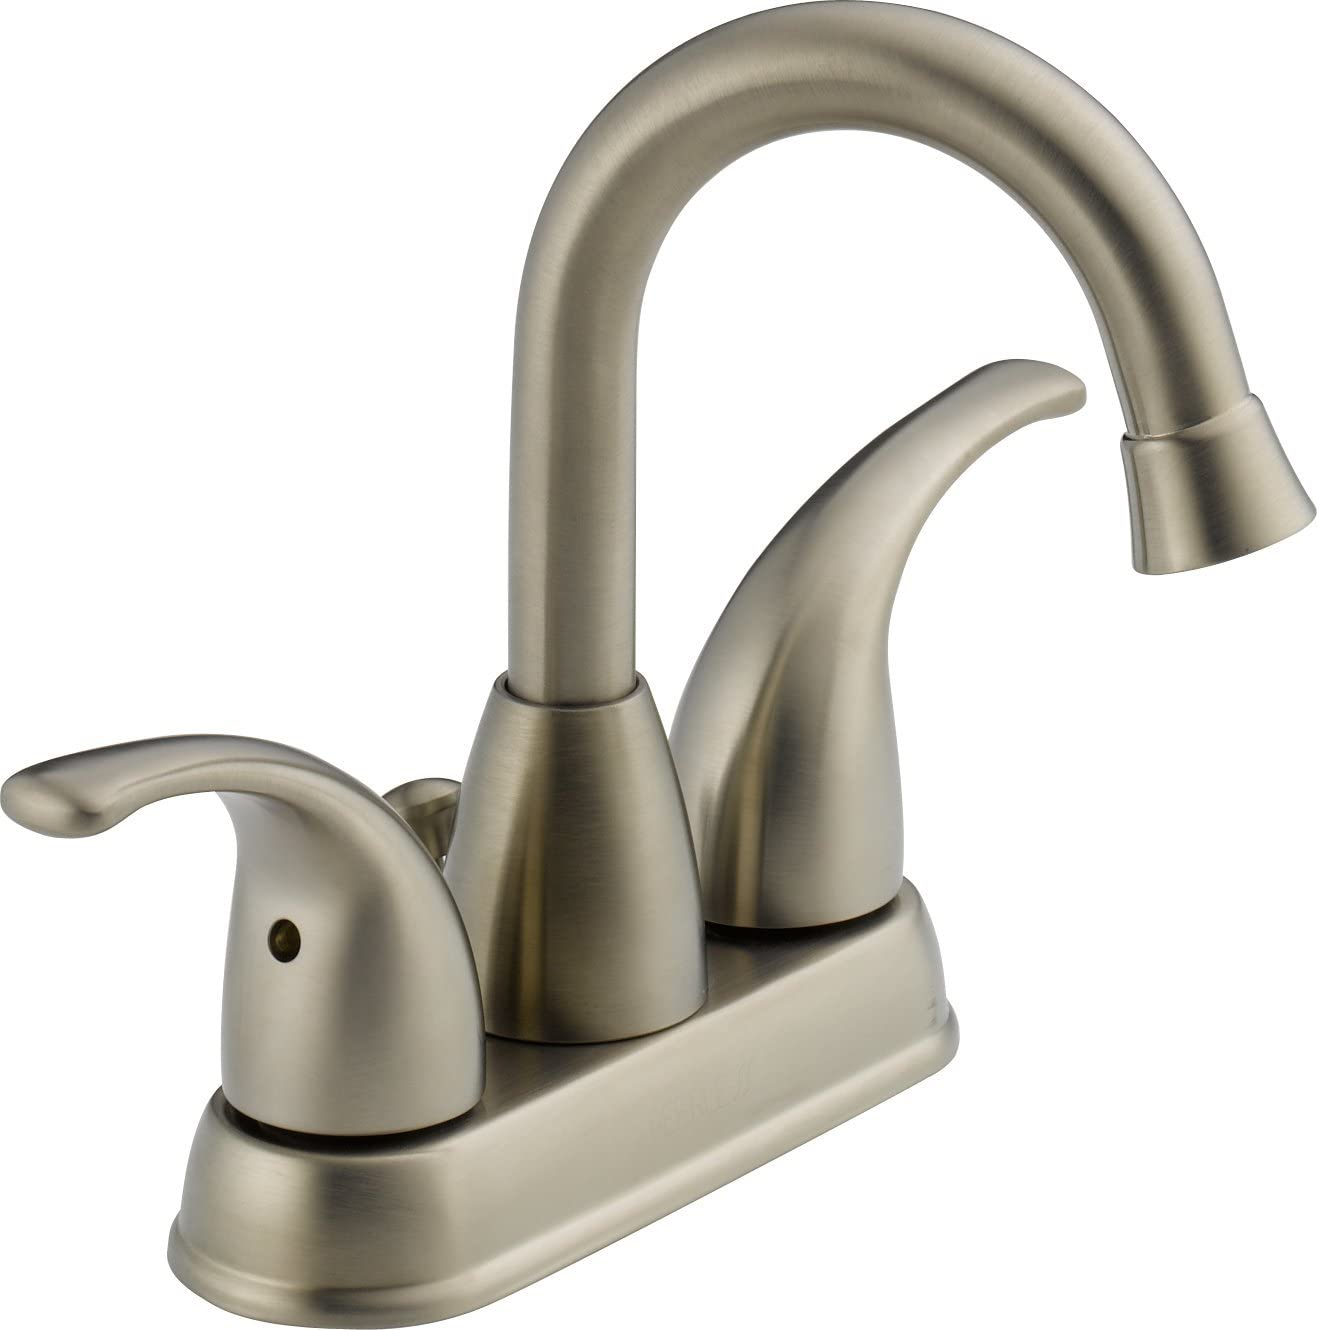 Peerless P99694LF-BN Apex Two Handle Centerset Bathroom Faucet, Brushed Nickel